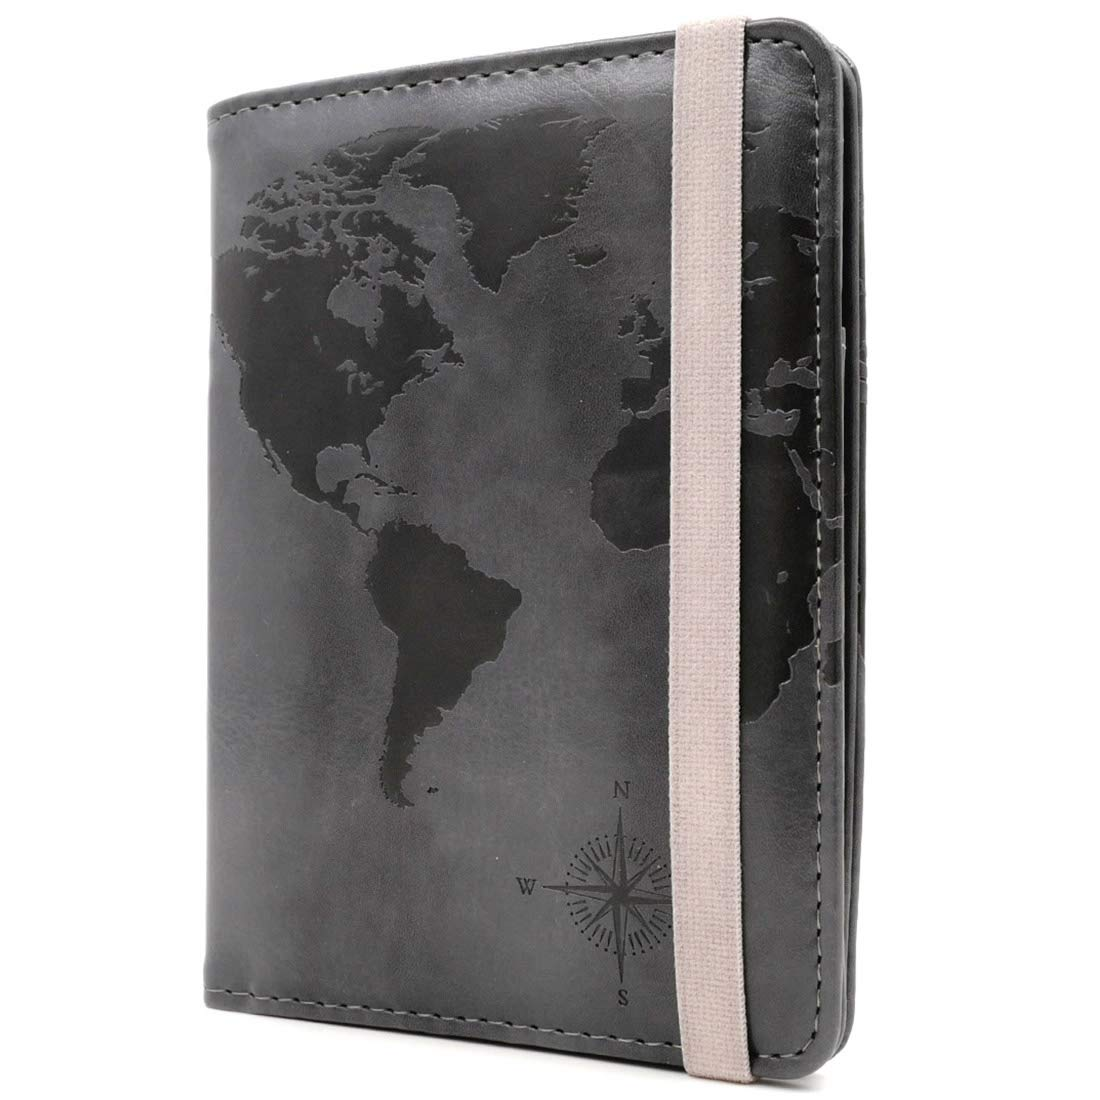 80921792e07f Kandouren RFID Blocking Passport Holder Cover Case,Travel Luggage Passport  Wallet Made with Gray World Map PU Leather for Men & Women